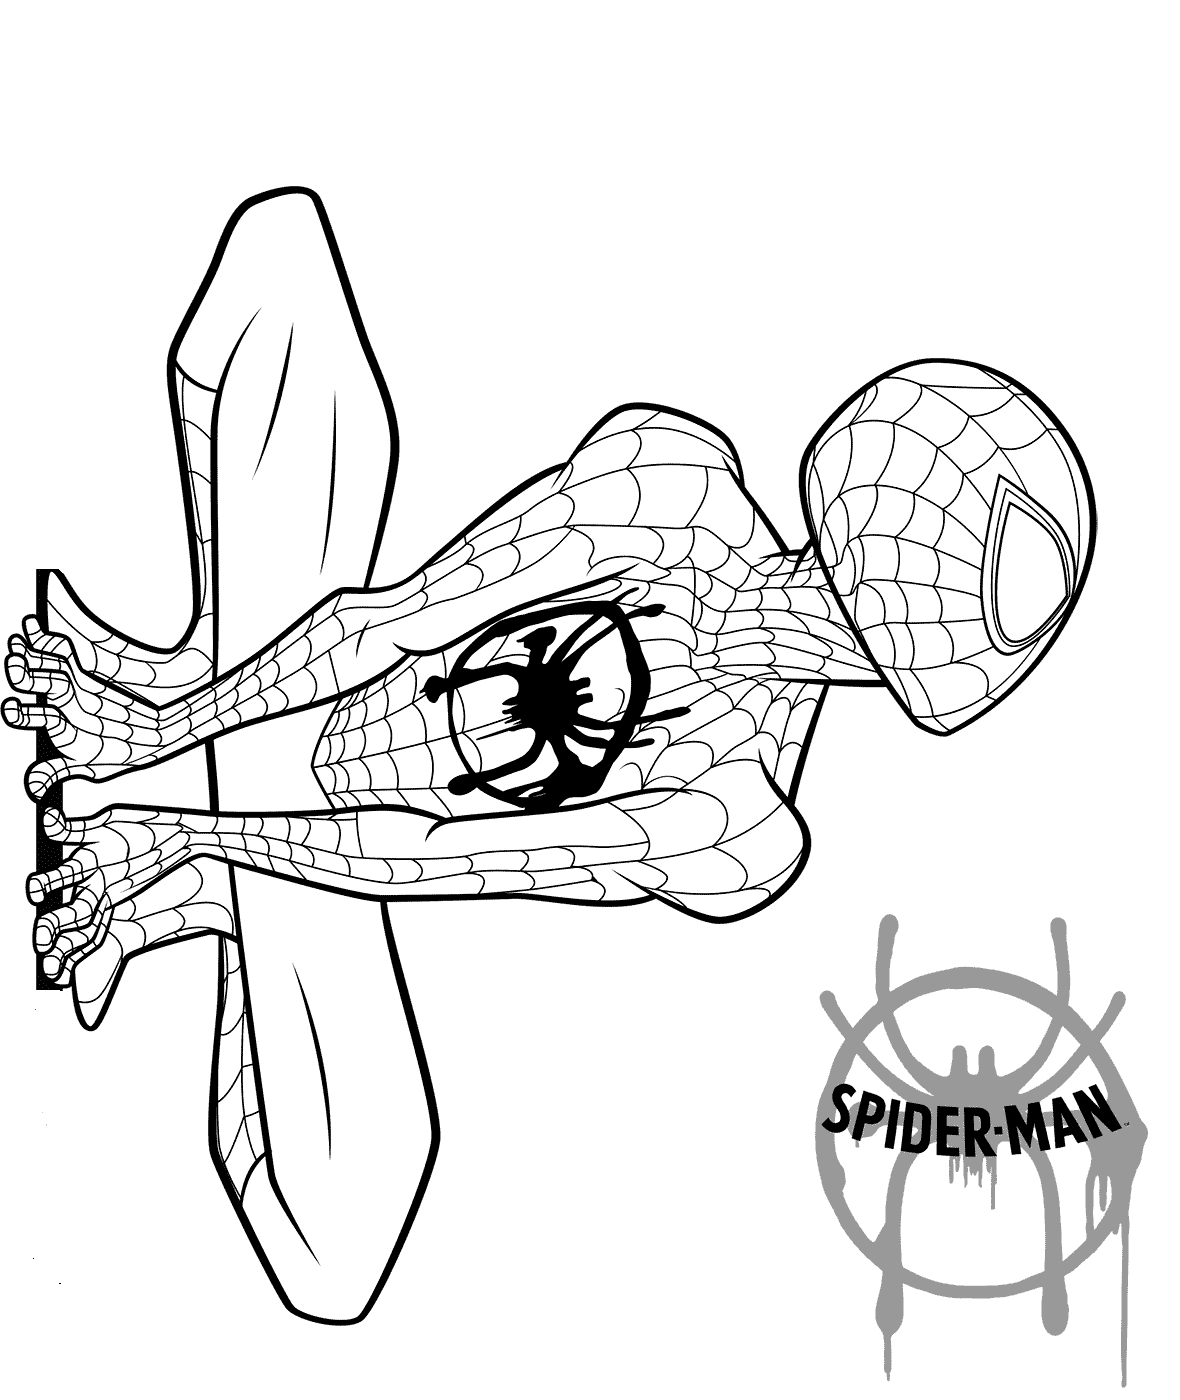 Spider Man Into The Spider Verse Coloring Page Spiderman Coloring Coloring Pages Whale Coloring Pages